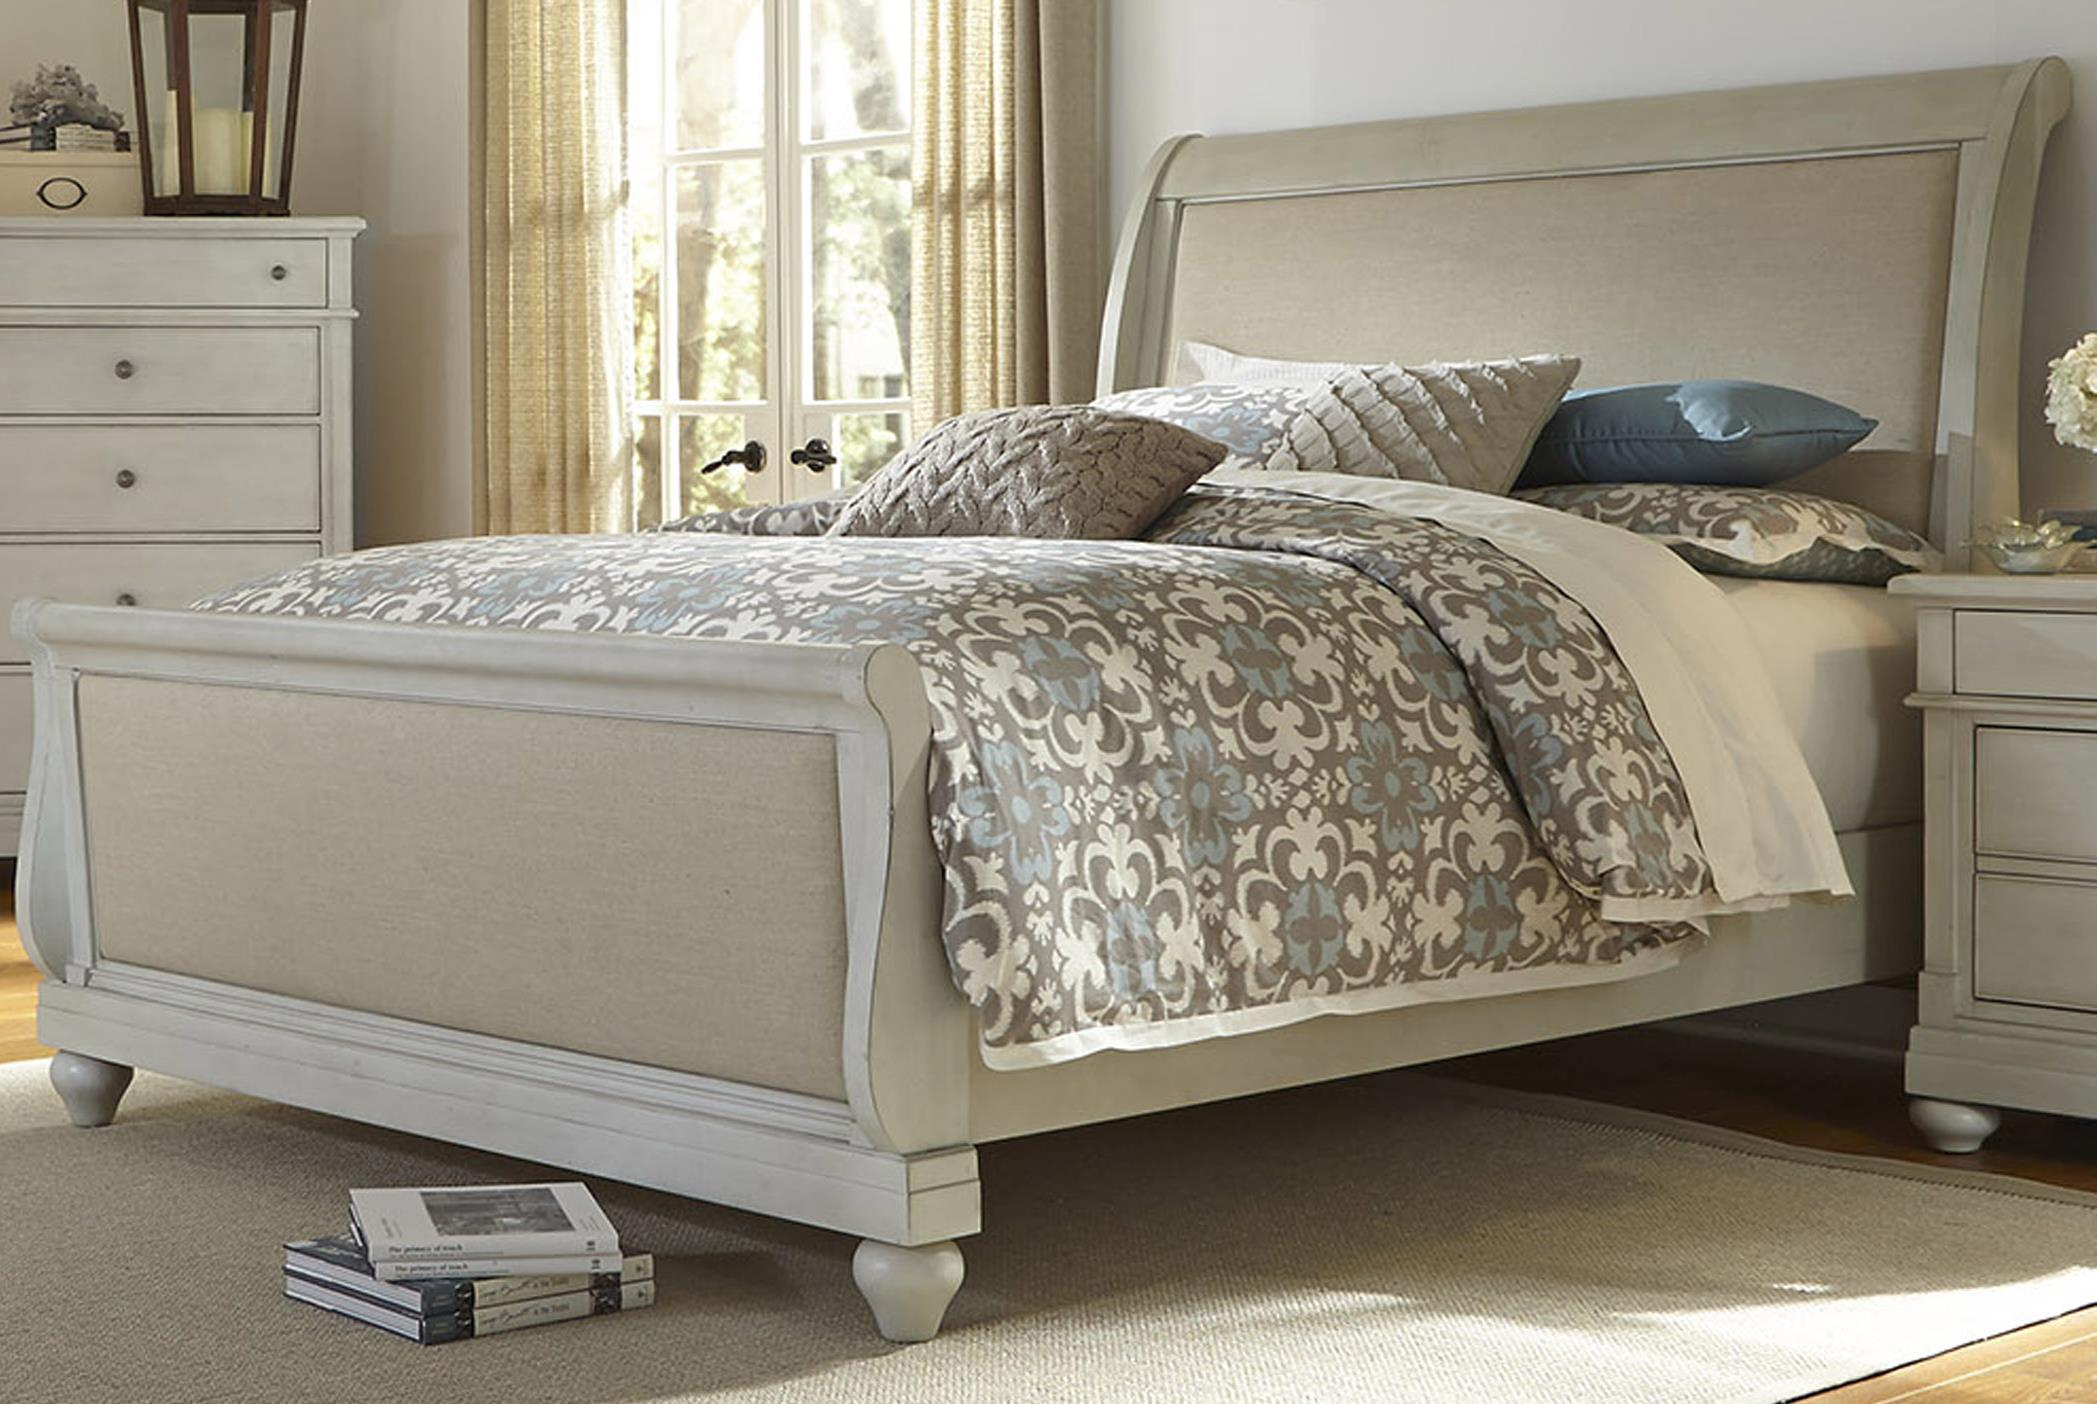 Liberty Furniture Harbor View Queen Sleigh Bed - Item Number: 731-BR-QSL